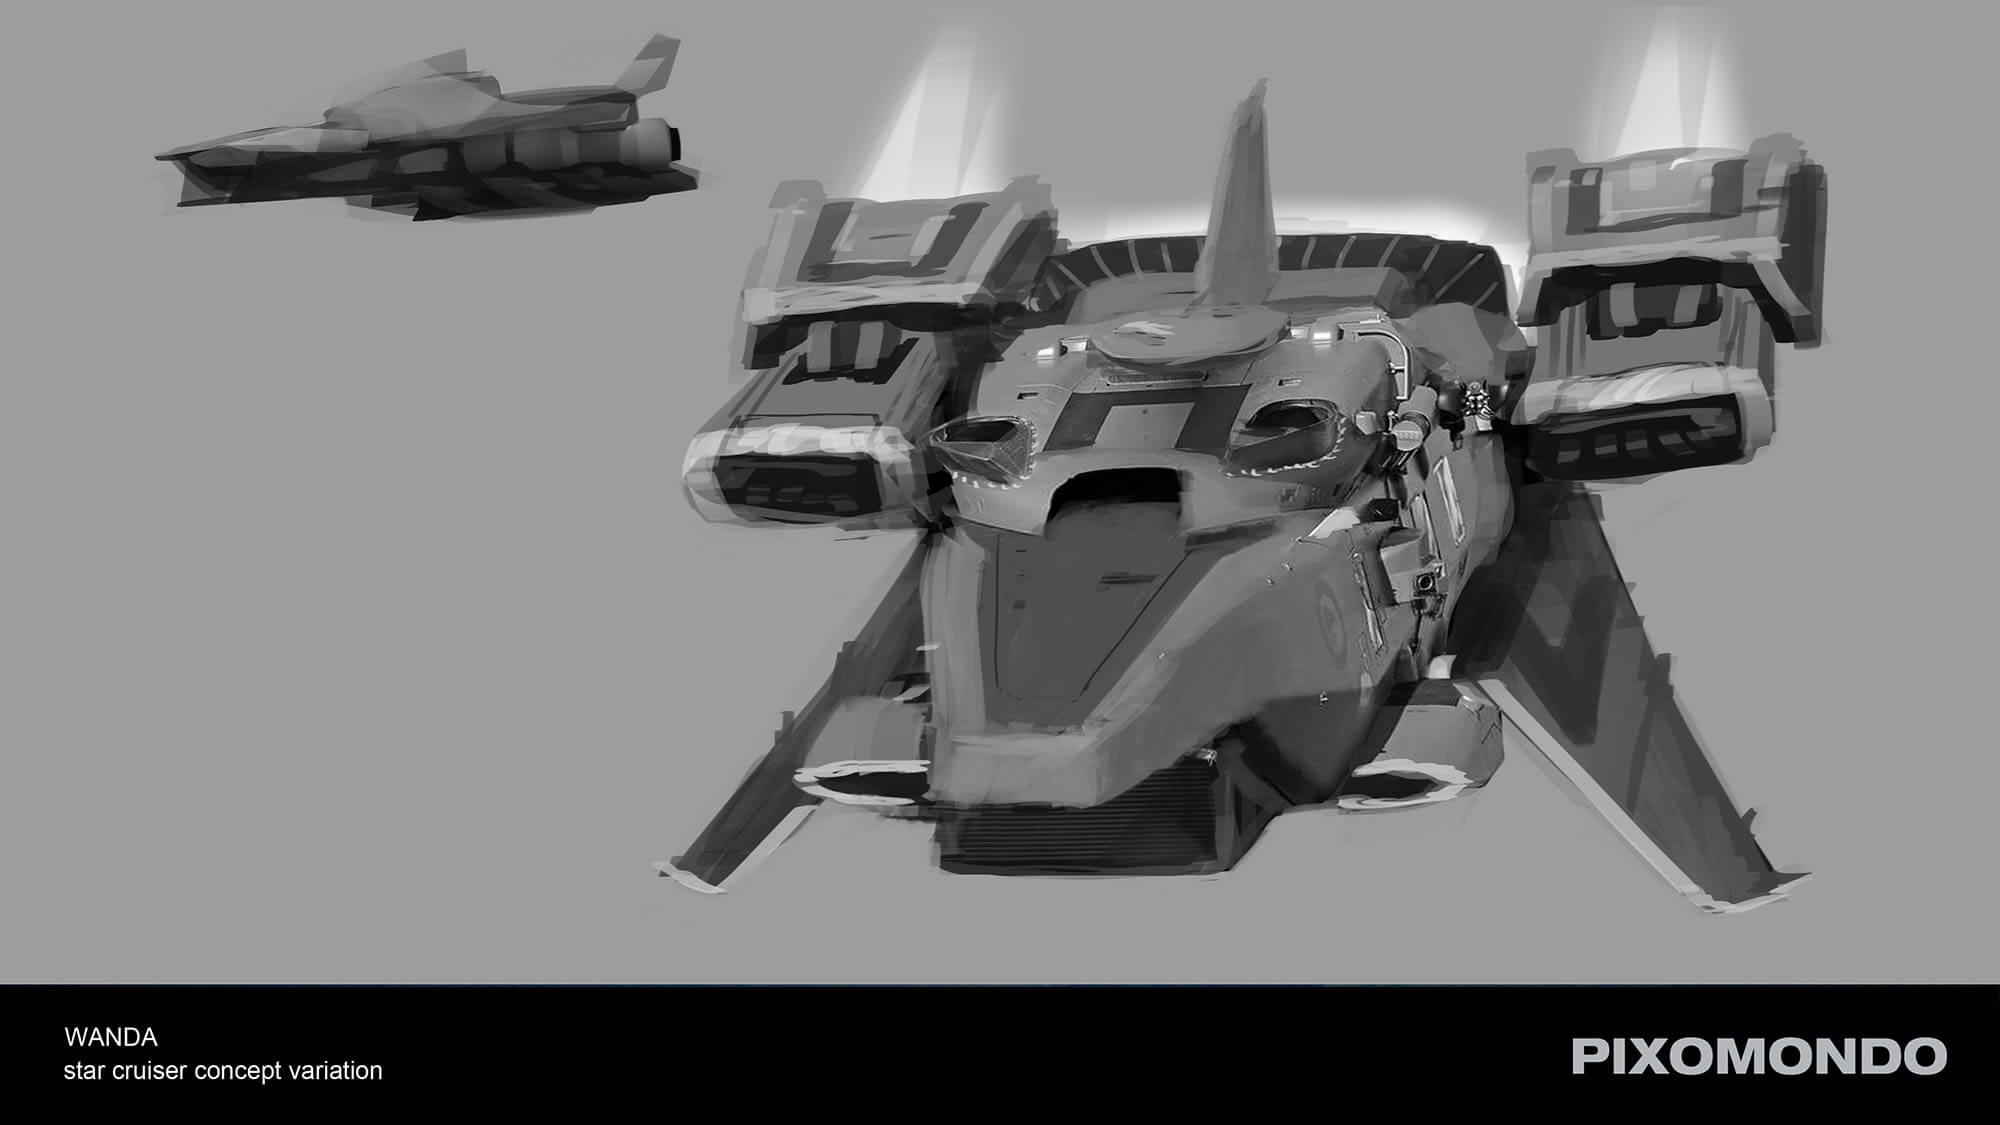 vehicle-concept-wanda-pixomondo-felix-botho-haas-cruiserA-v004e